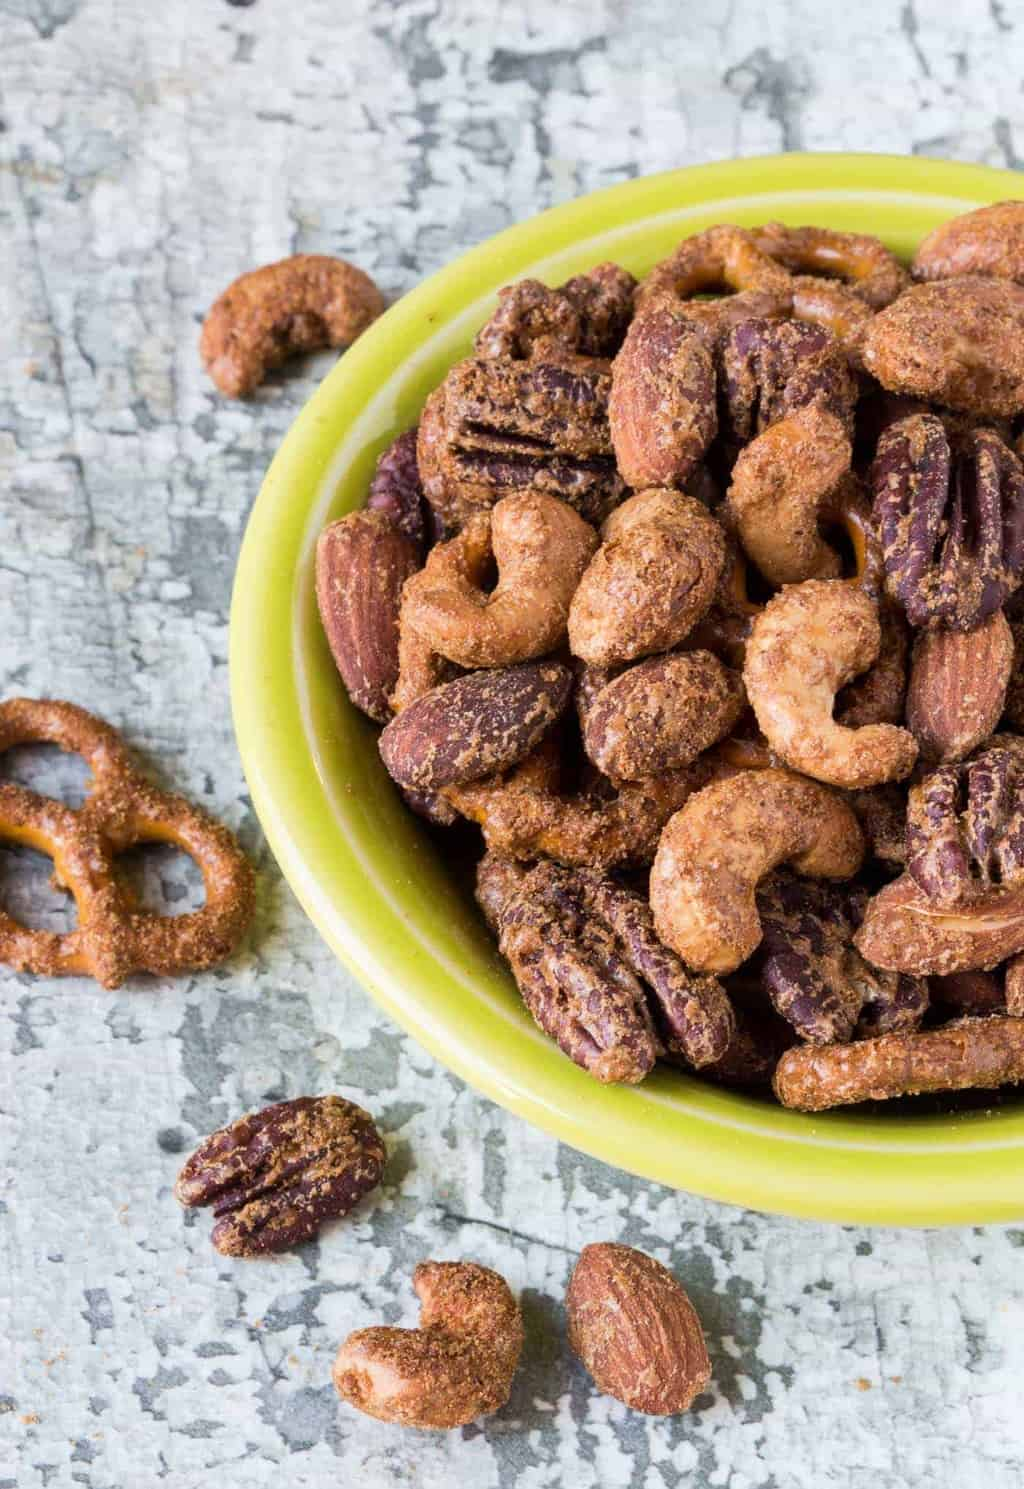 Add a little sweet heat to your appetizer spread with this make-ahead Spicy Sweet Pretzel Nut Snack Mix.